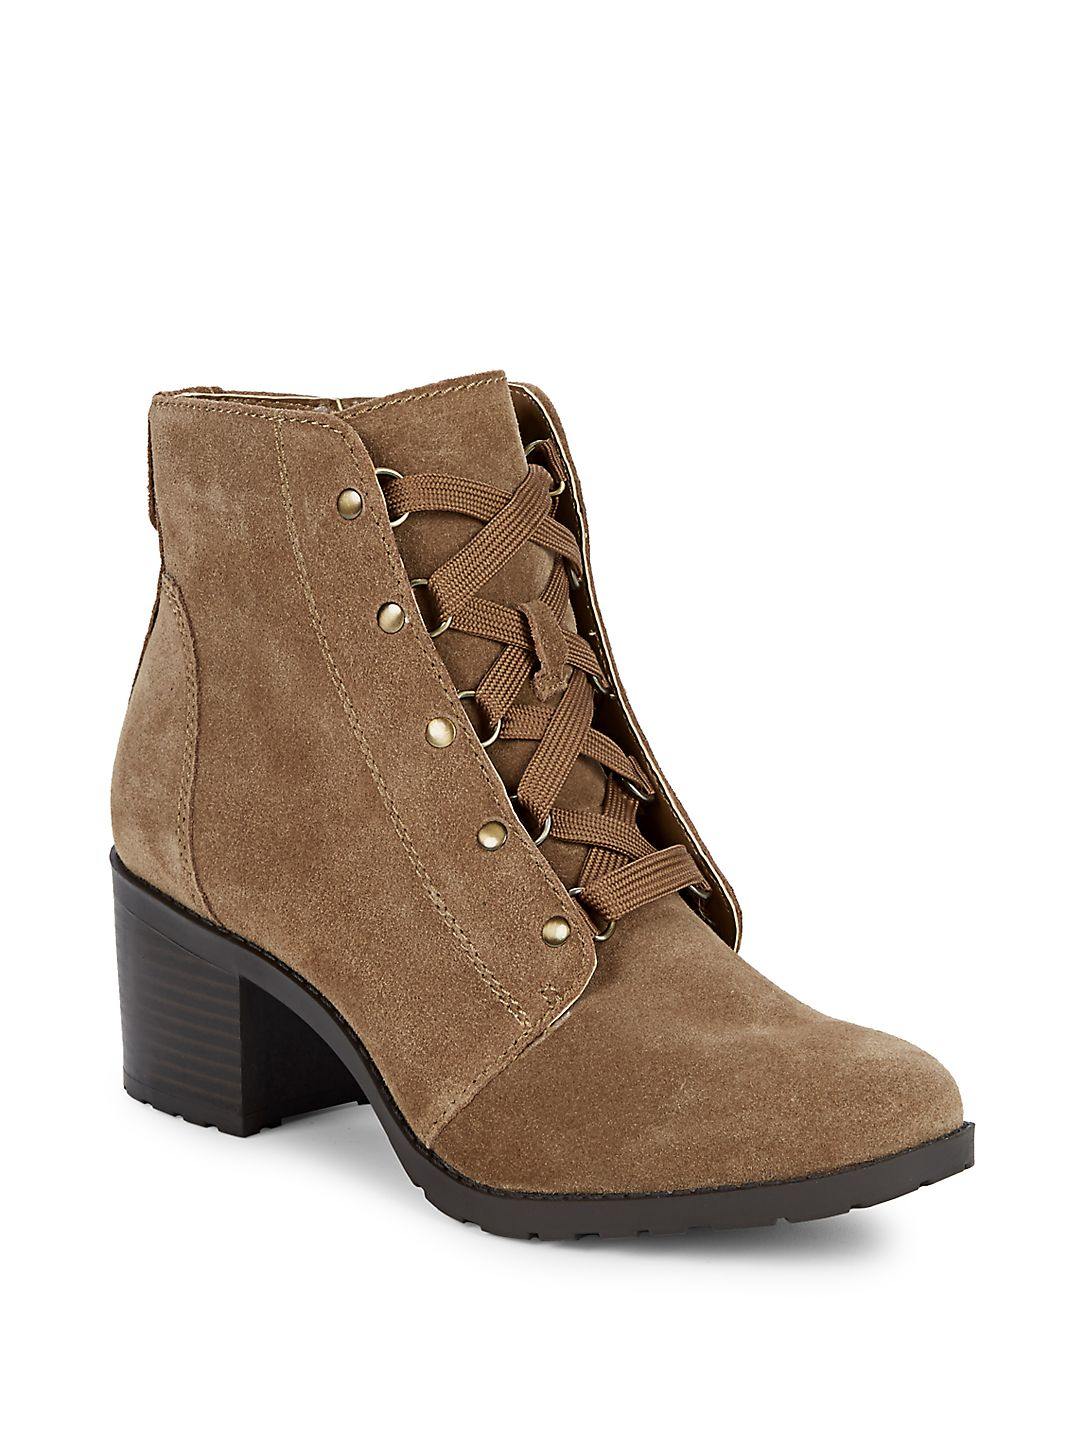 Kimbree Lace-Up Leather Boots